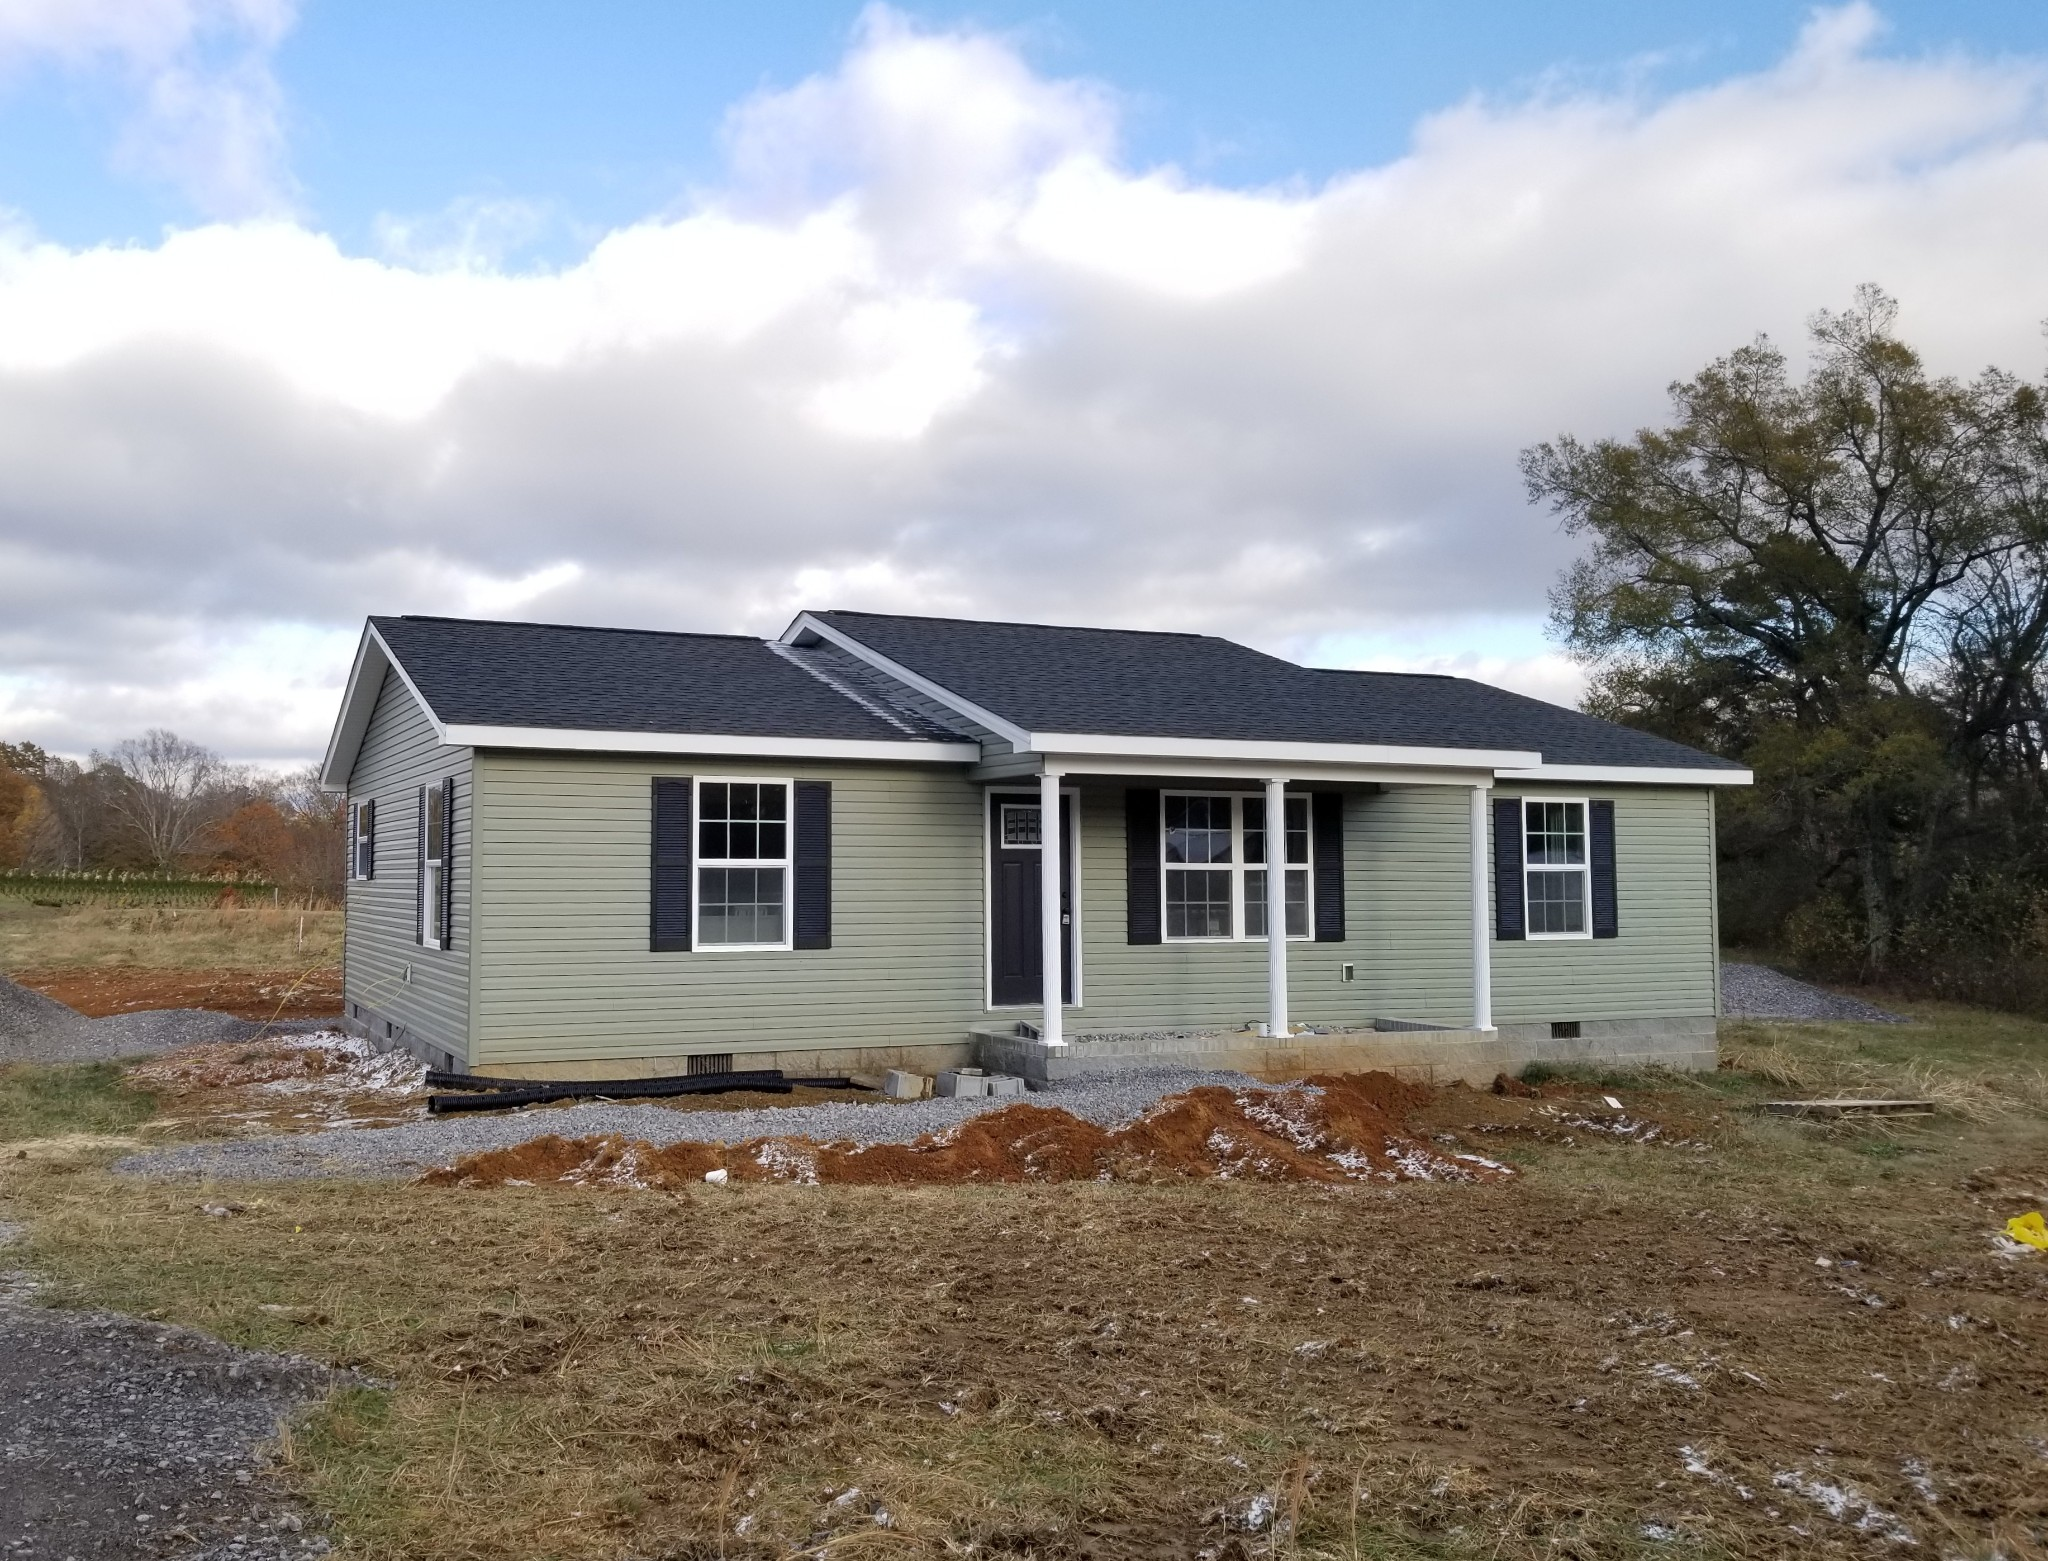 703 Old McMinnville Hwy, Woodbury, TN 37190 - Woodbury, TN real estate listing